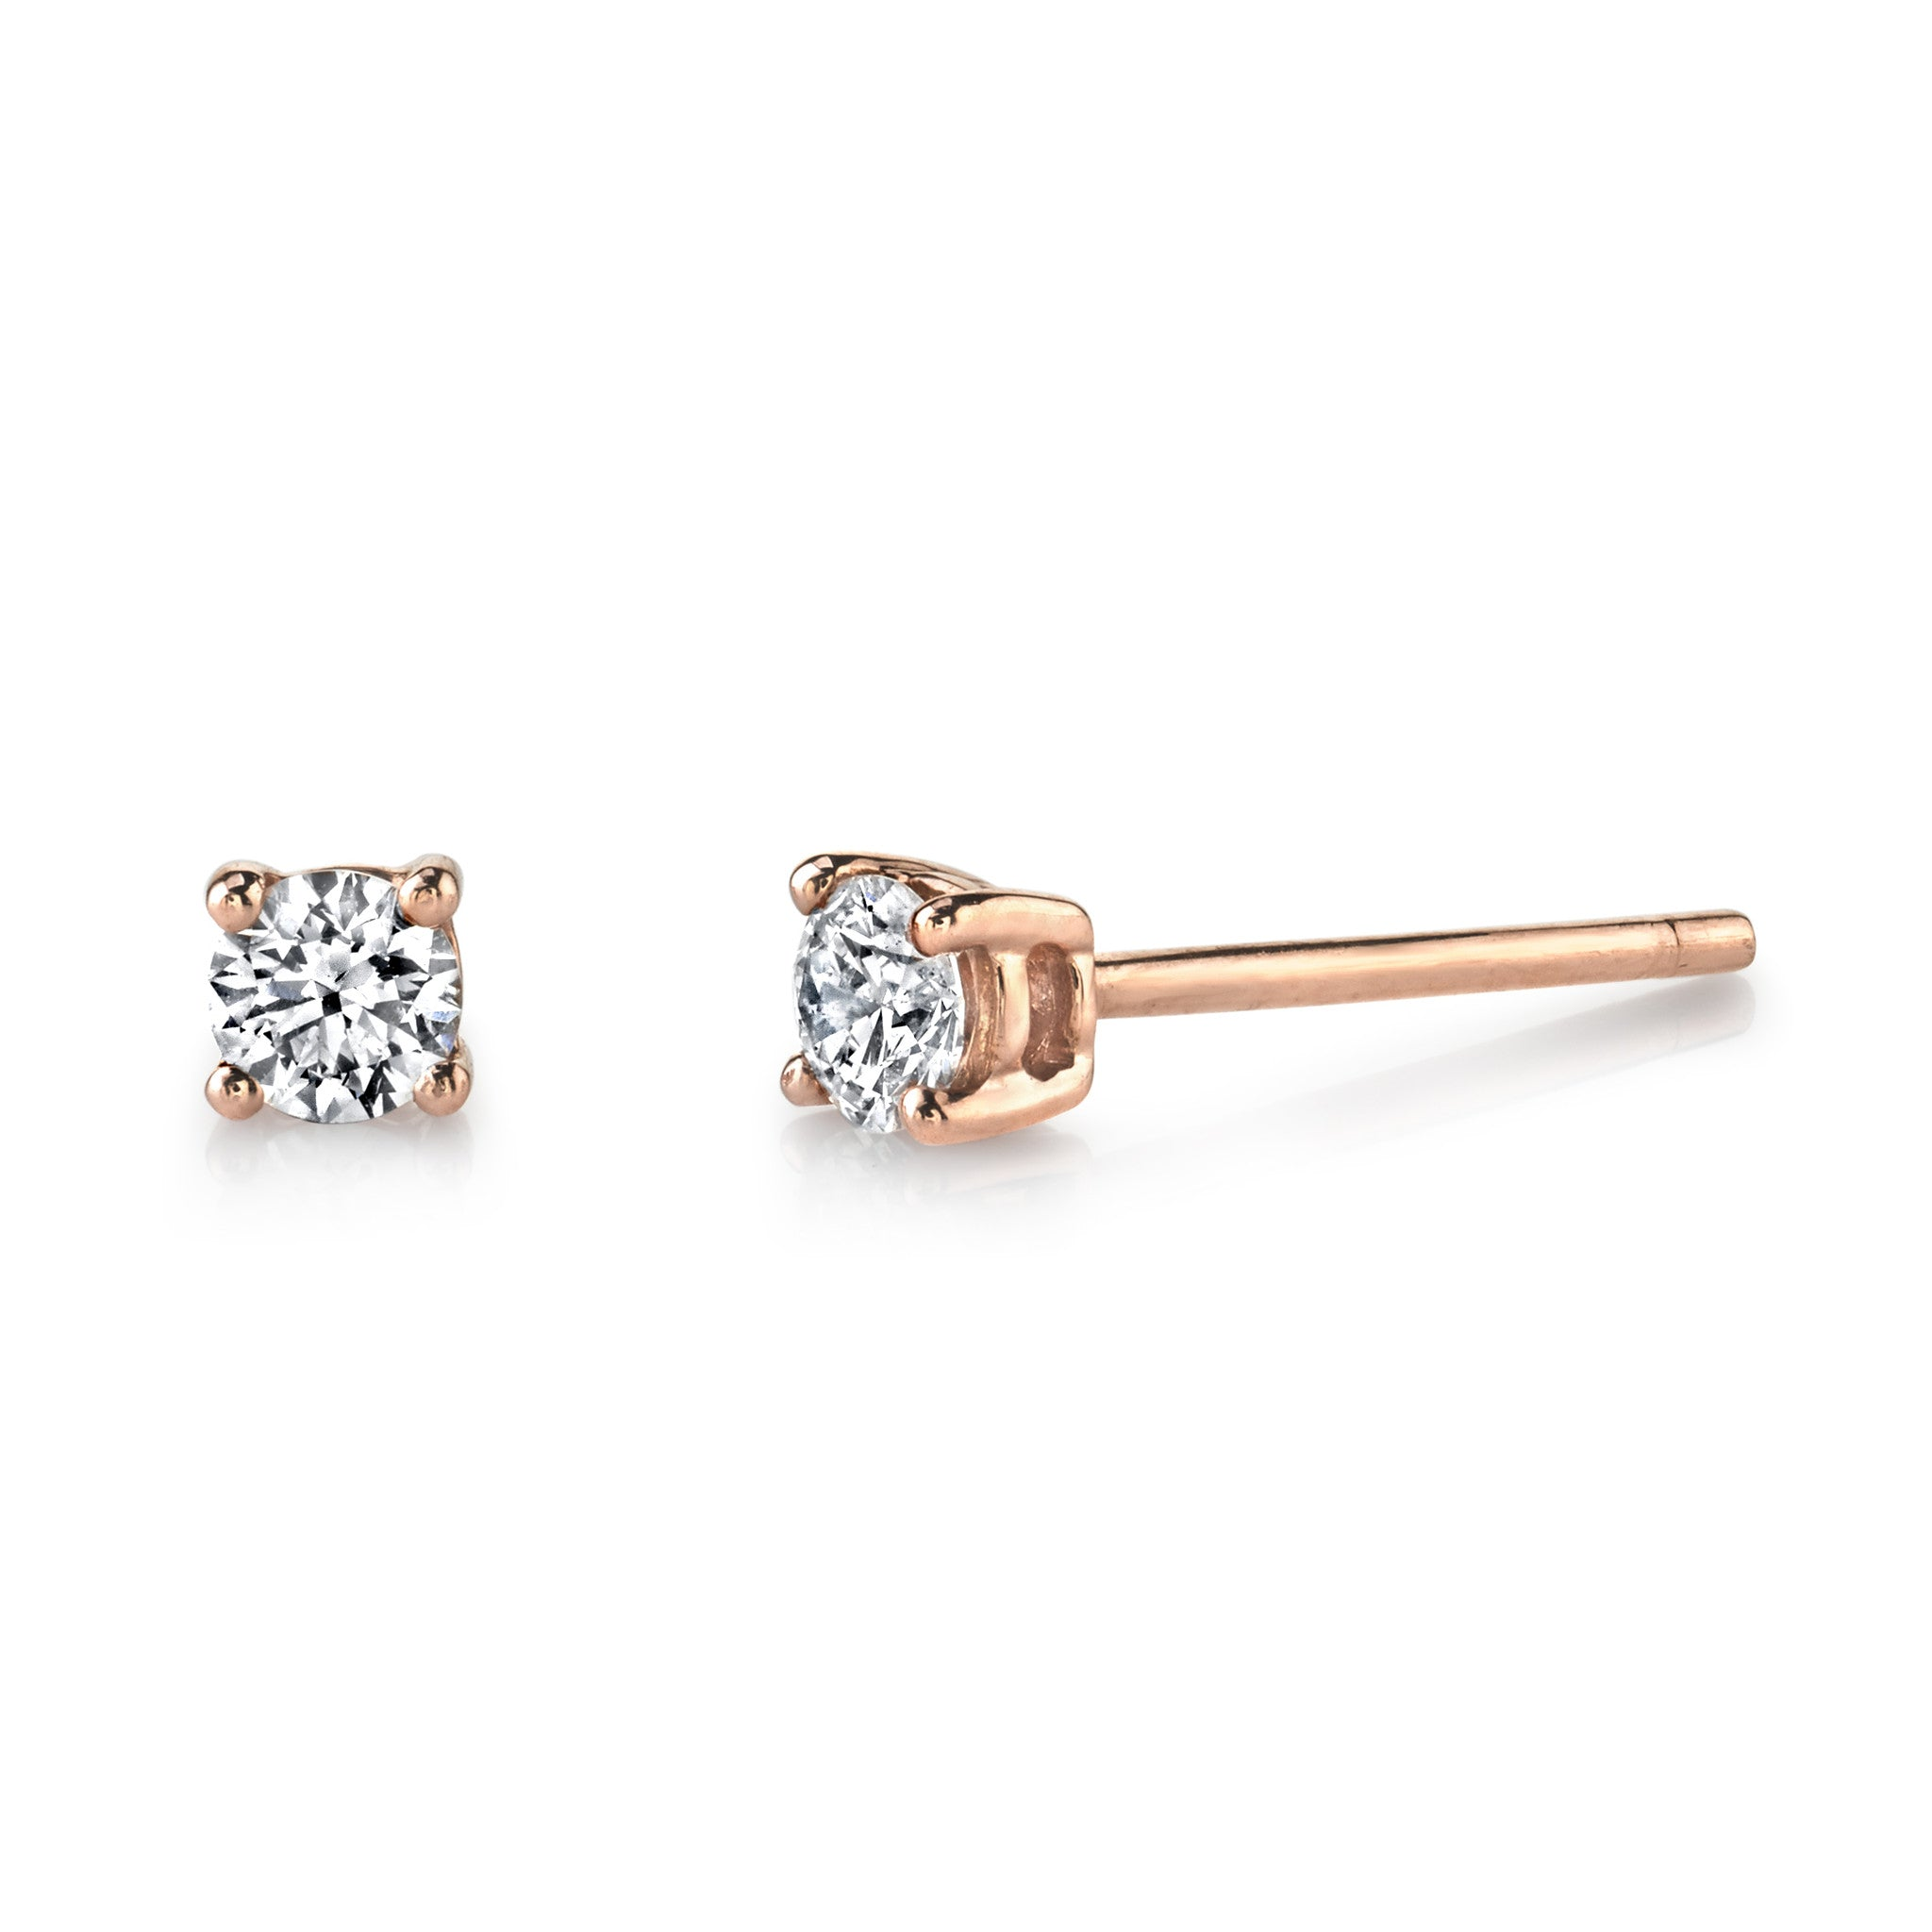 brown twin gallery kawakita stud jewelry in lyst pearl earrings and gold satomi diamond